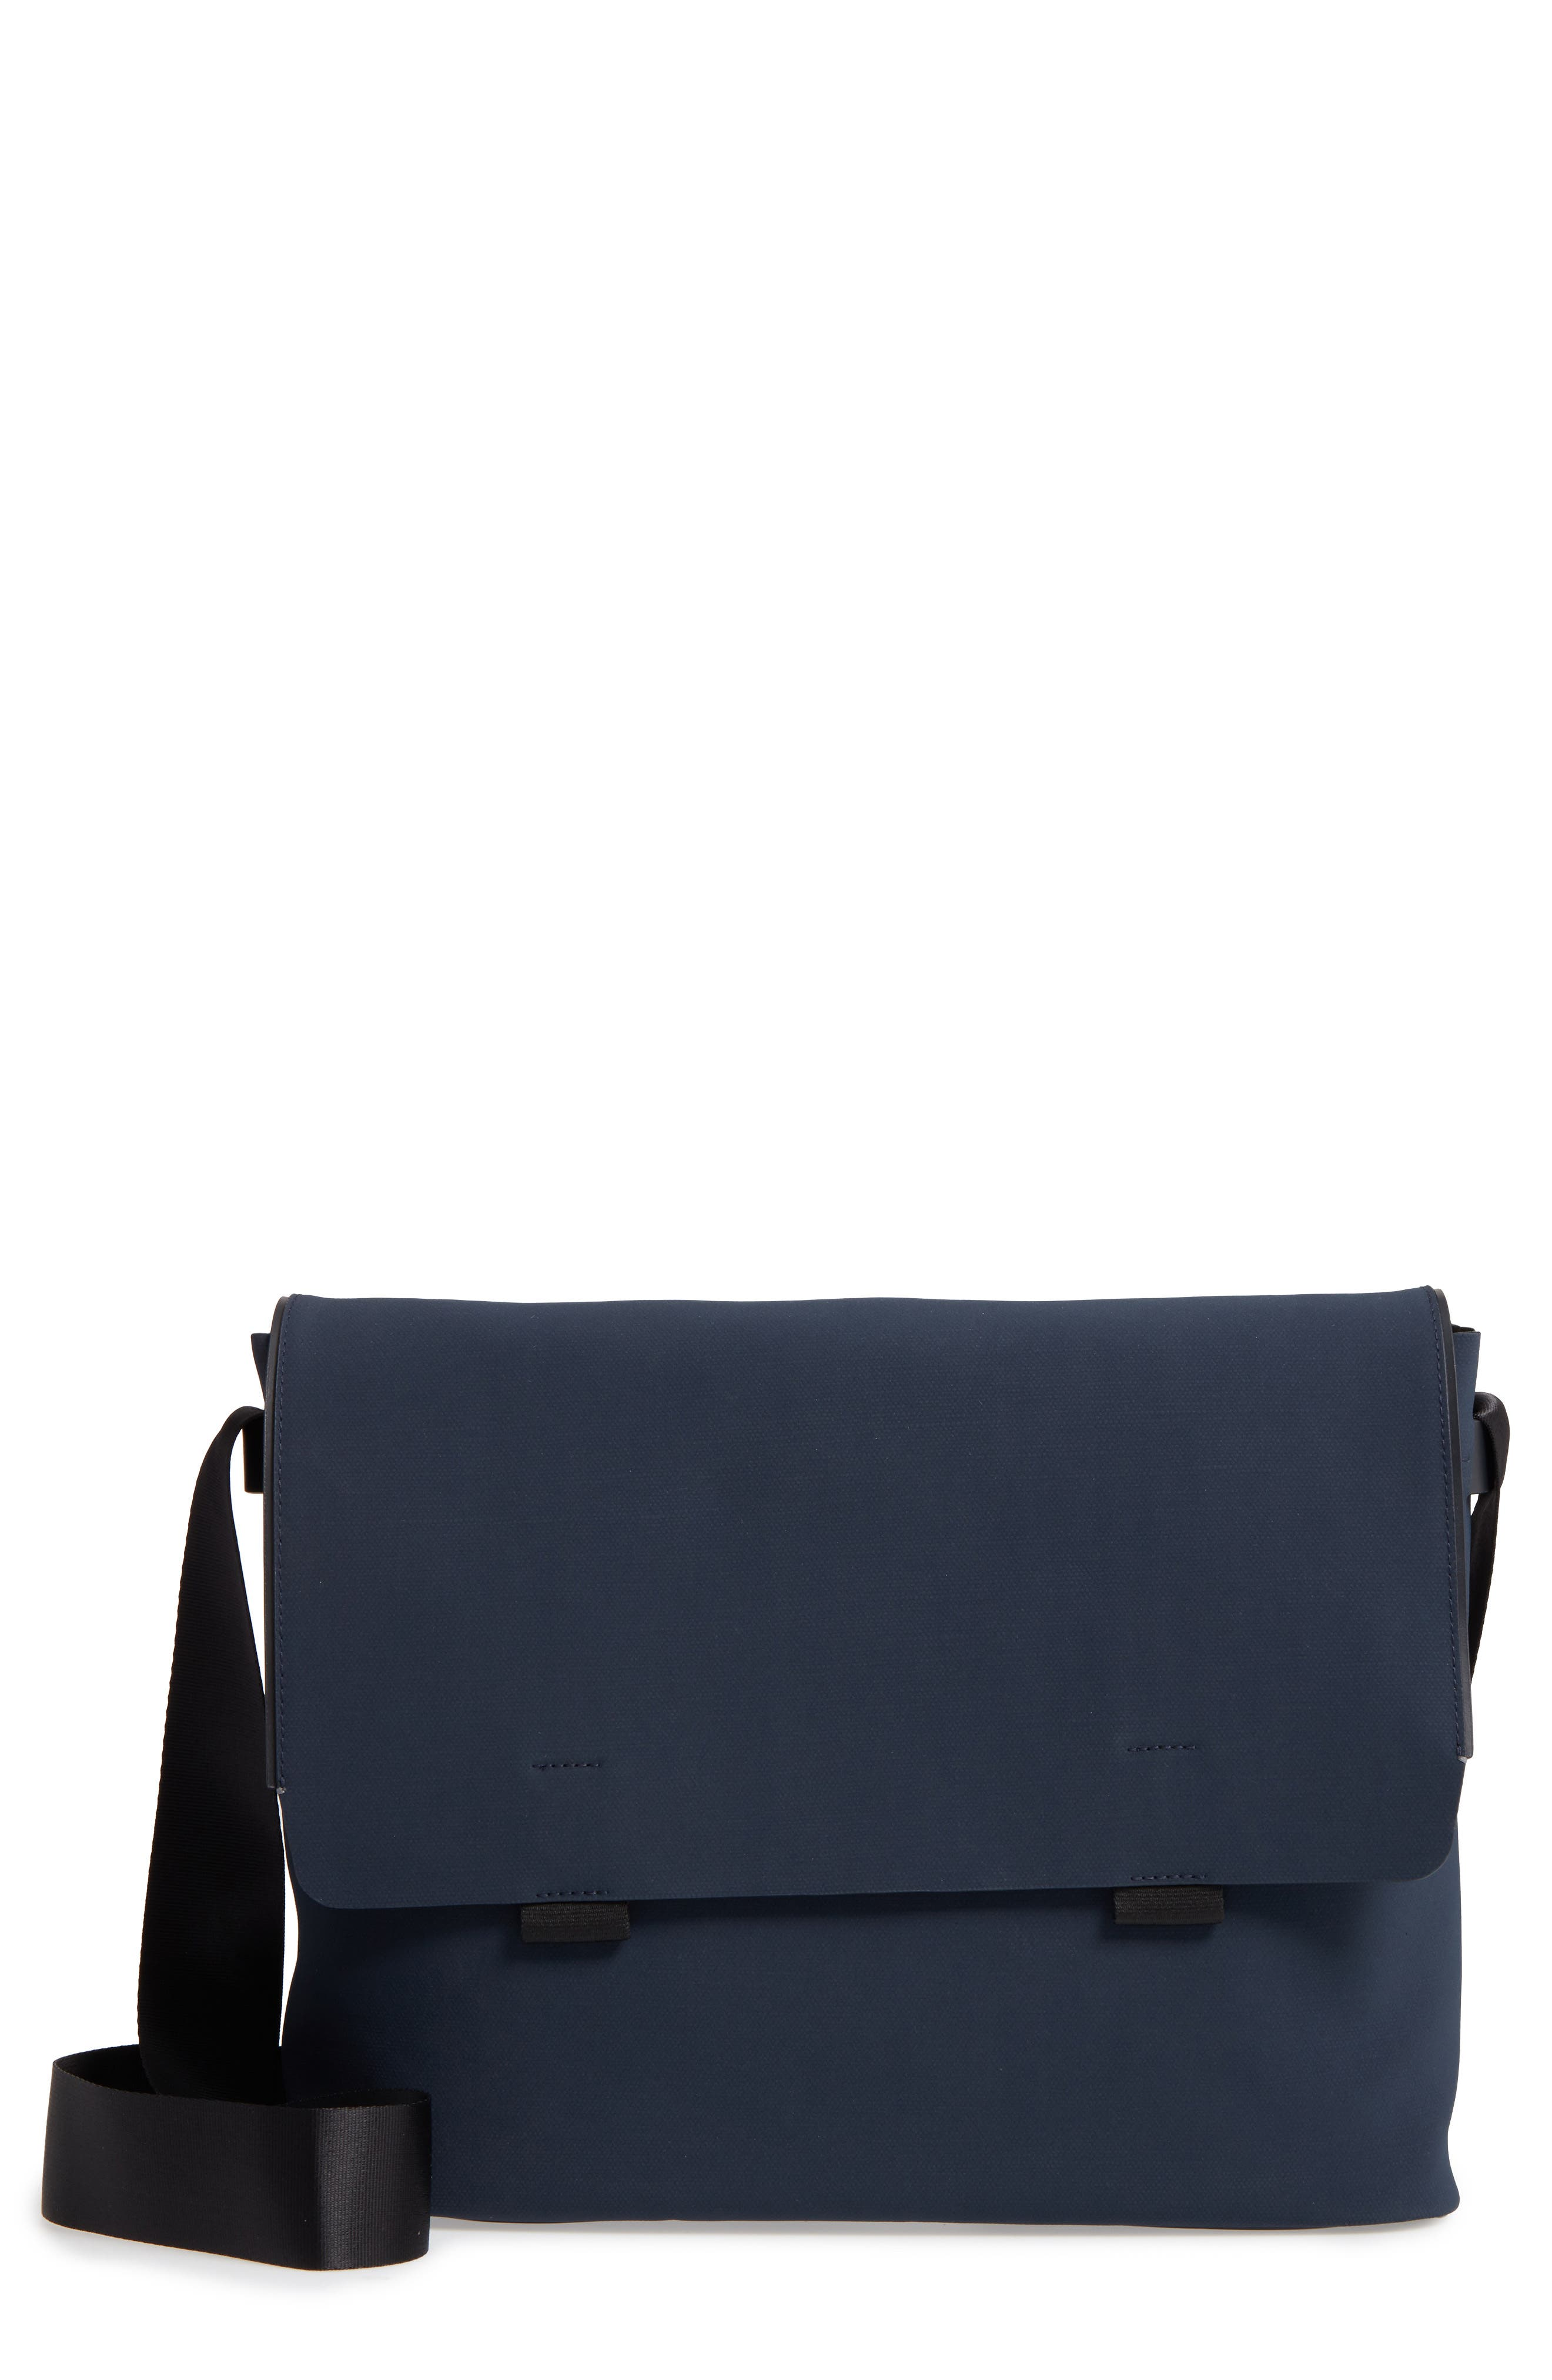 Canvas Messenger Bag,                         Main,                         color, Navy Canvas/ Navy Leather